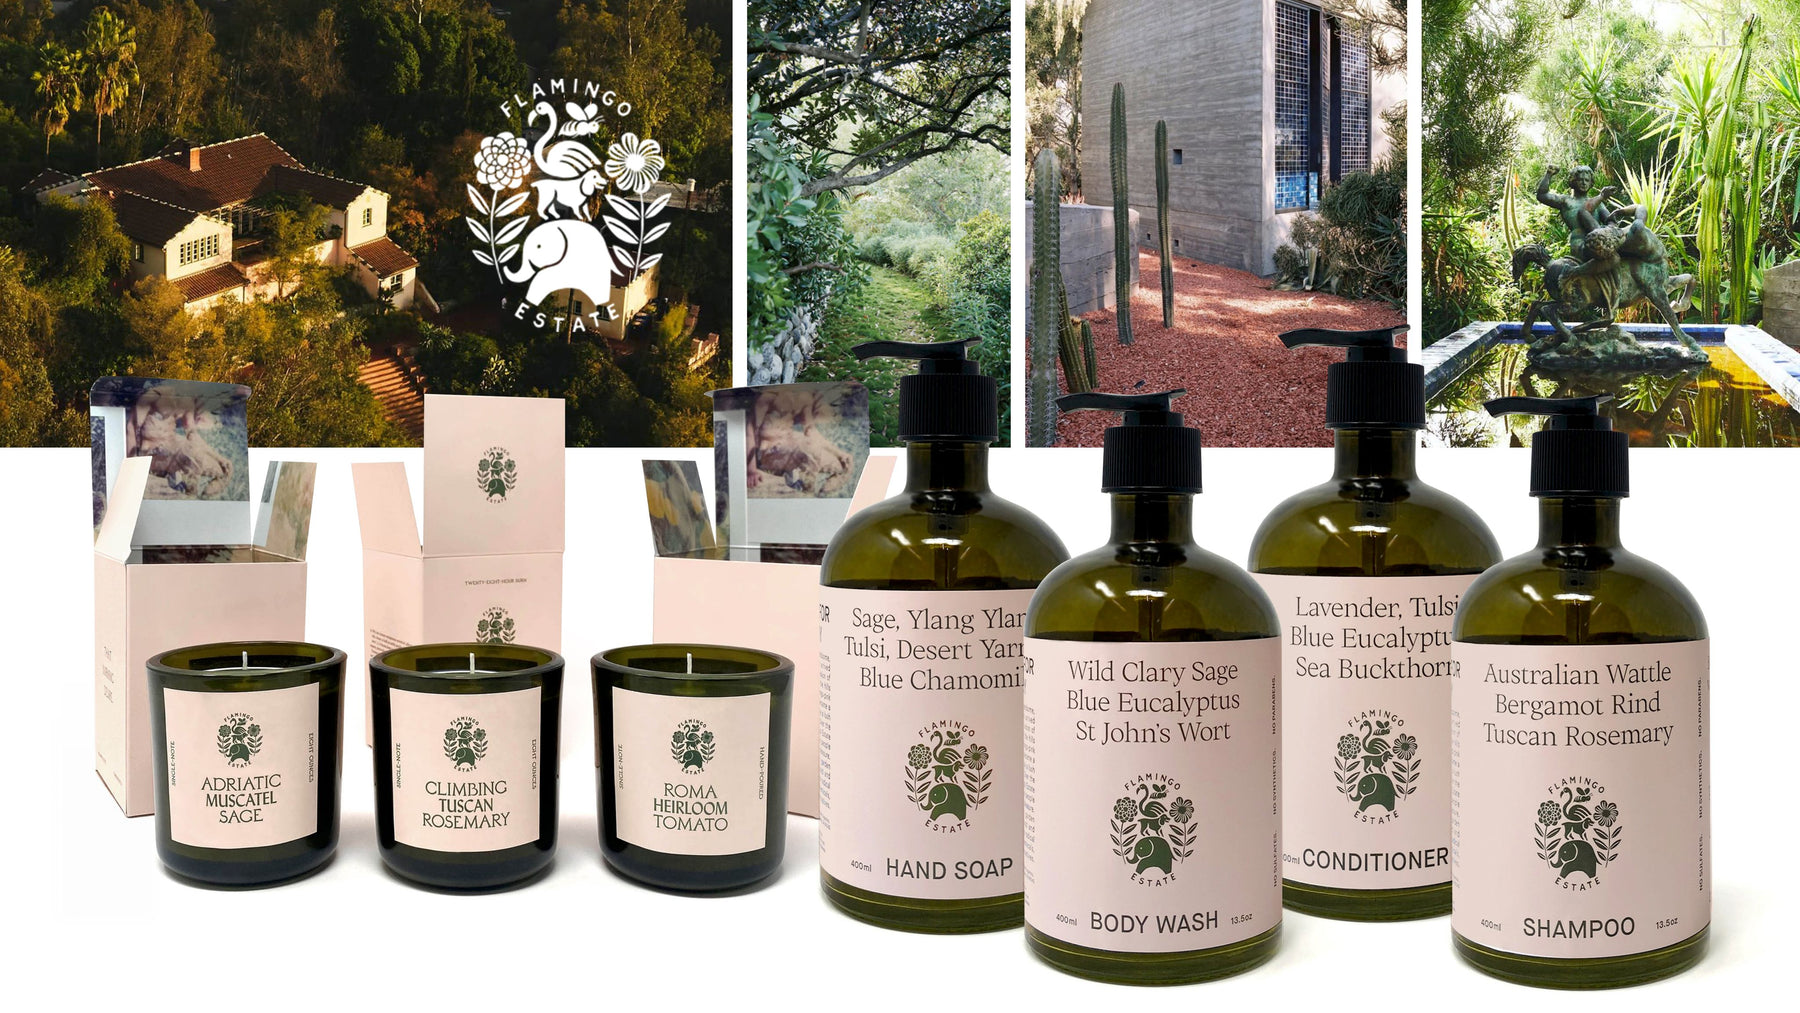 Flamingo Estate Organics Candles, Body Care and Hair Care